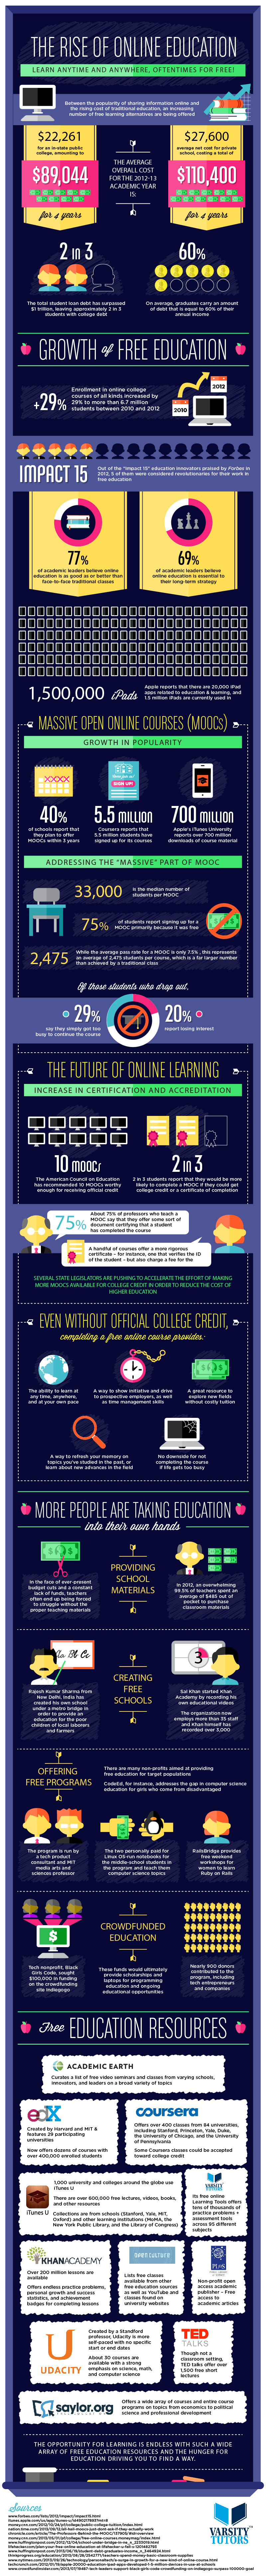 Free-Online-Education-On-The-Rise-Infographic